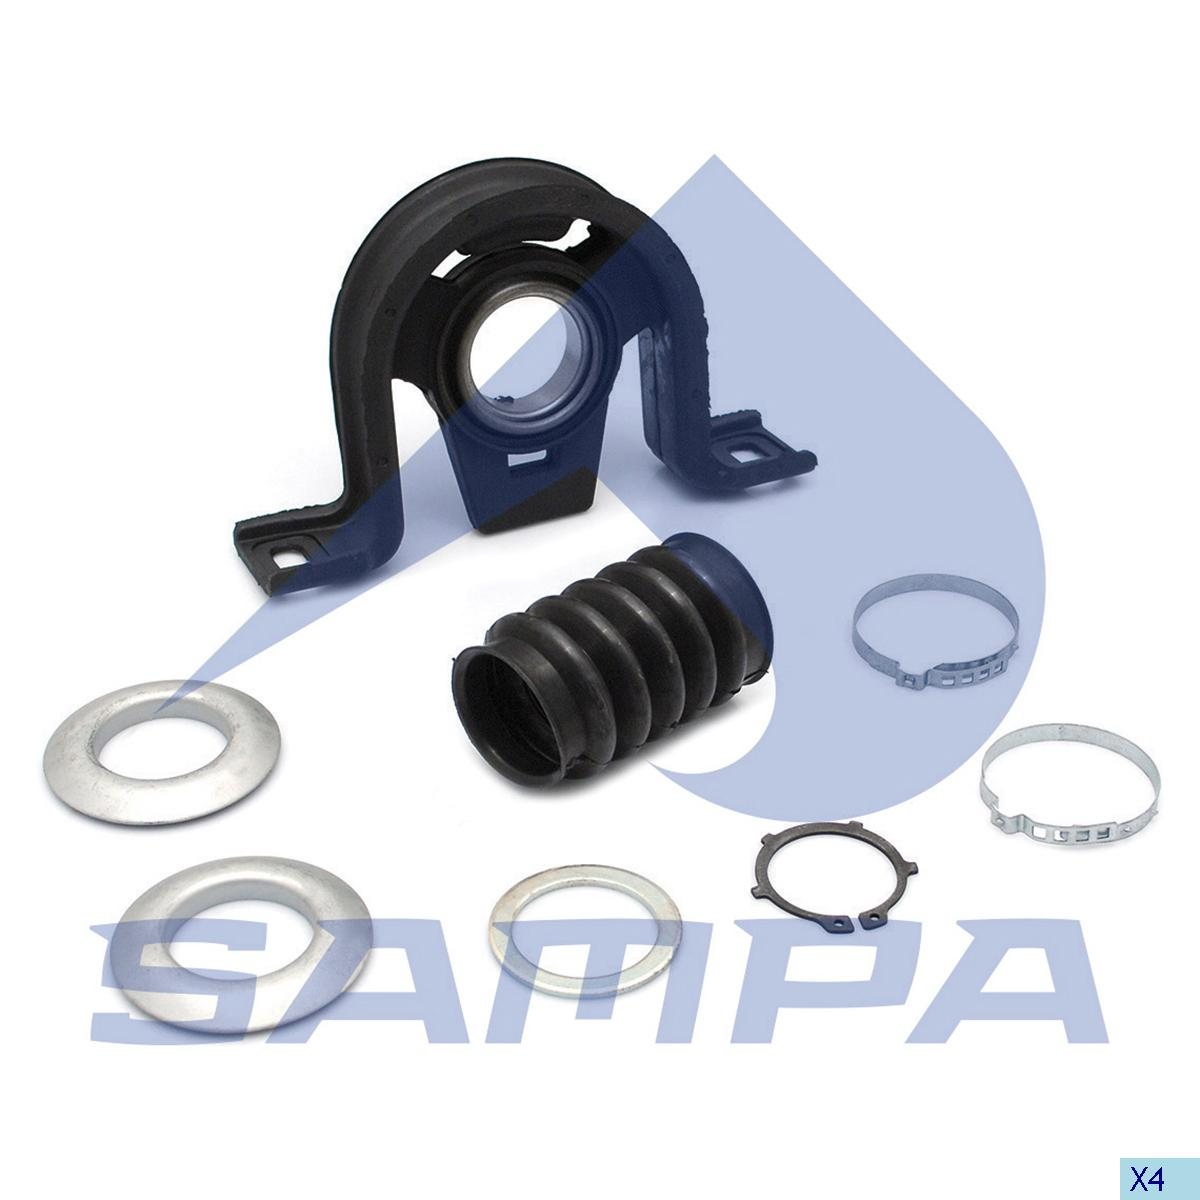 Repair Kit, Propeller Shaft Bearing, Mercedes, Propeller Shaft